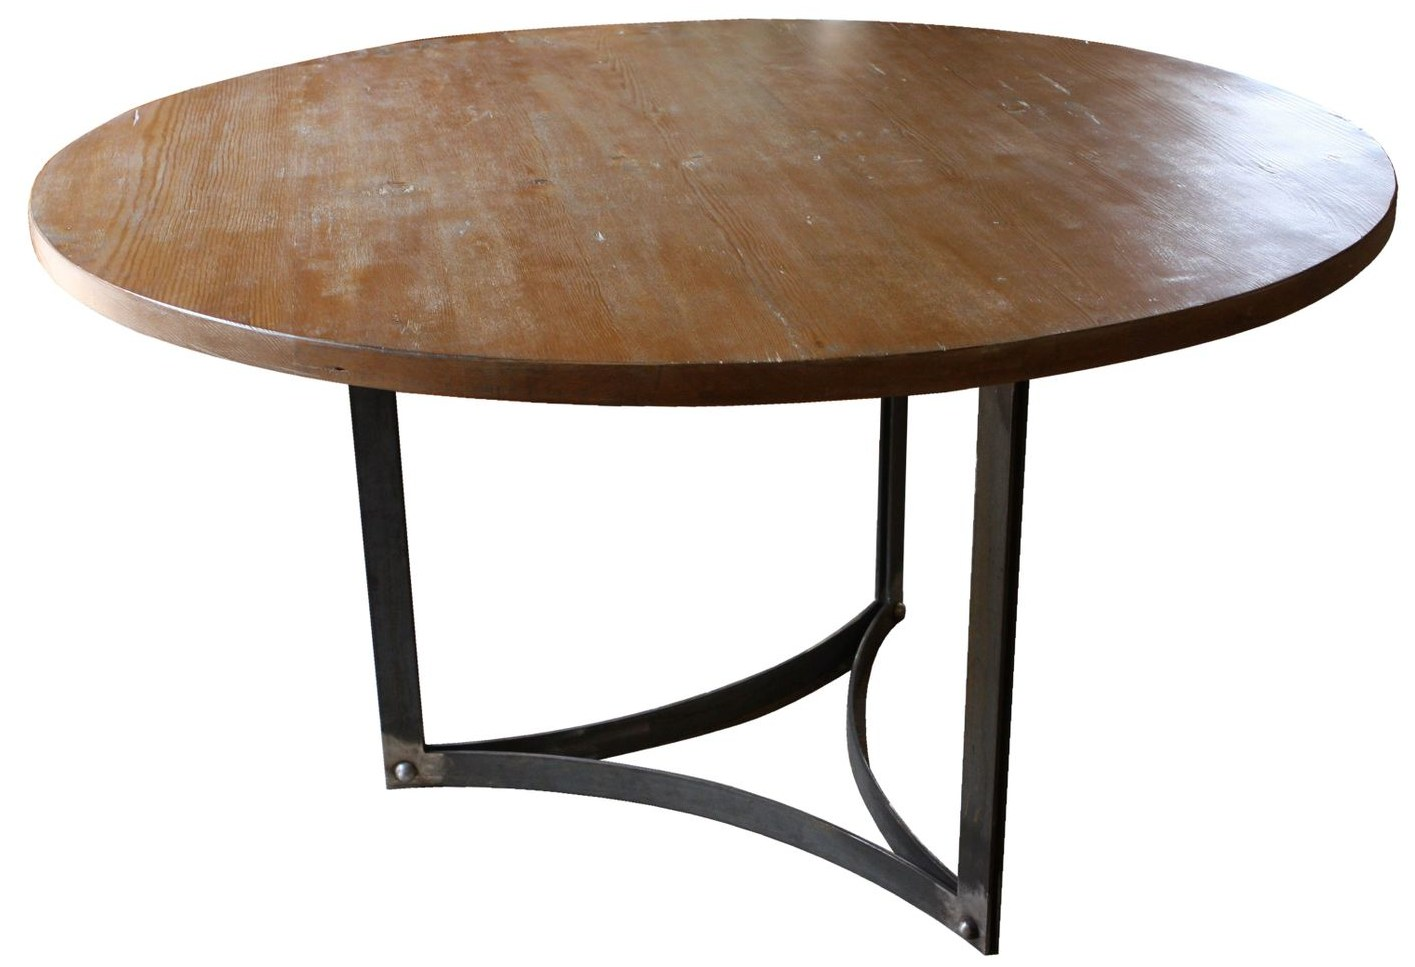 round dining tables for sale furniture charming custom reclaimed wood dining table custom reclaimed wood dining table reclaimed wood dining